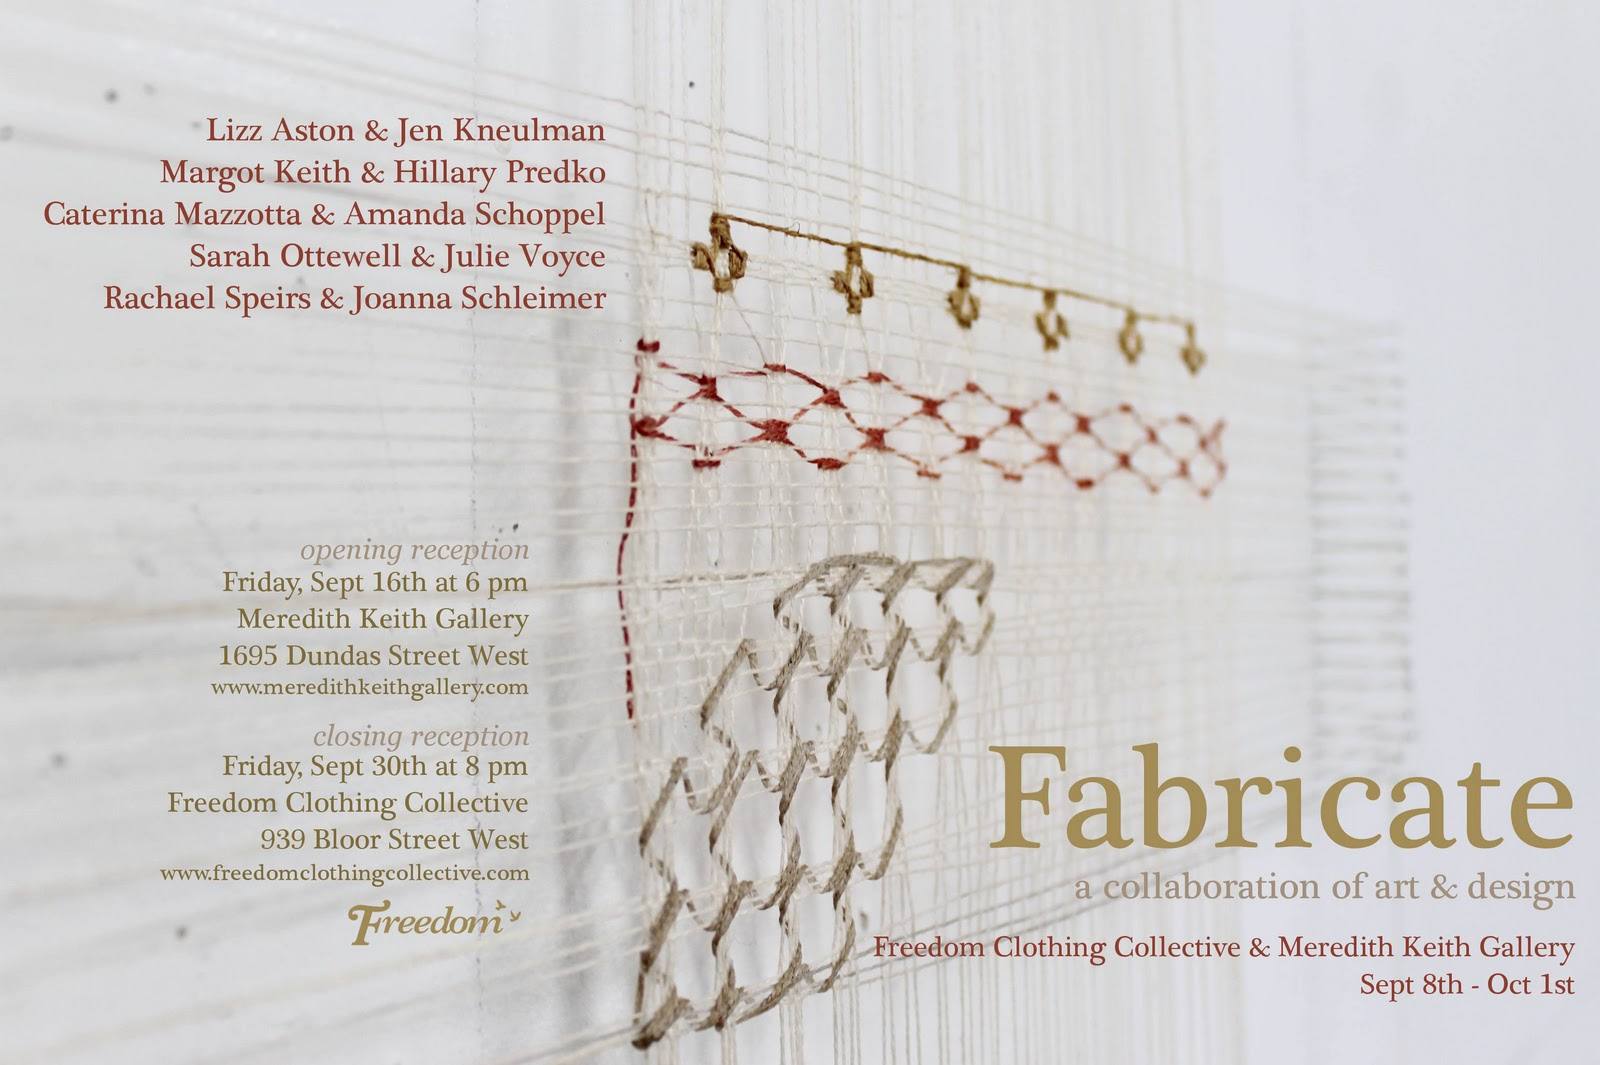 lizz aston: Fabricate: Natural dyes and white-work embroidery.